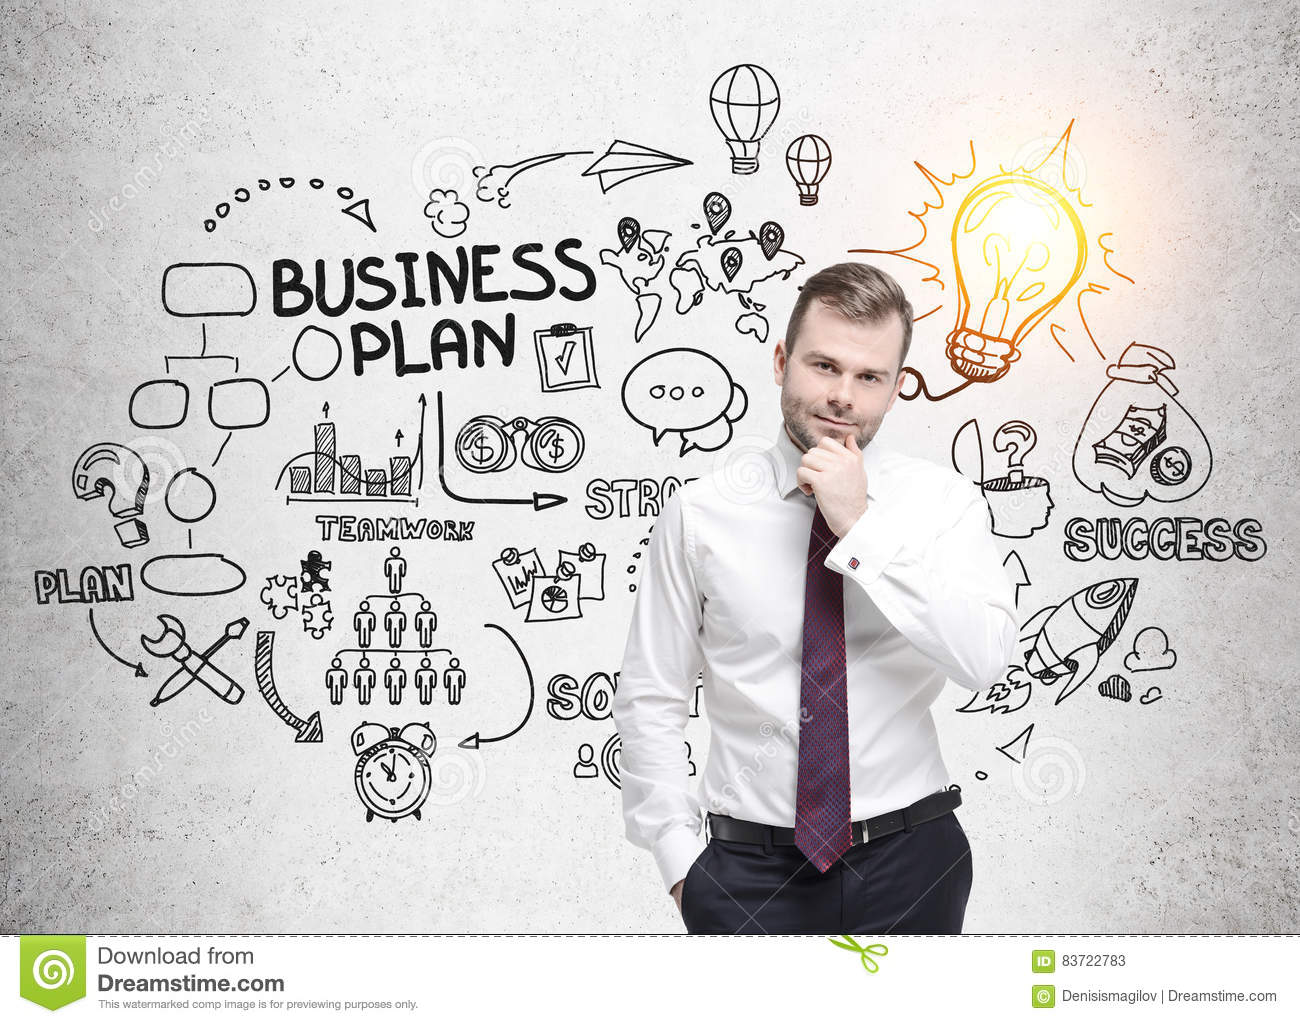 Bearded Man With Red Tie And Business Plan Sketch Stock Photo